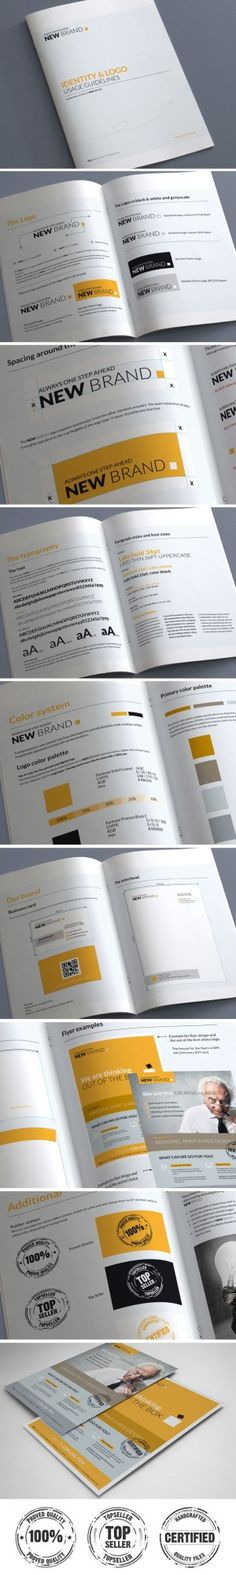 Brand Guidelines – 20 Pages